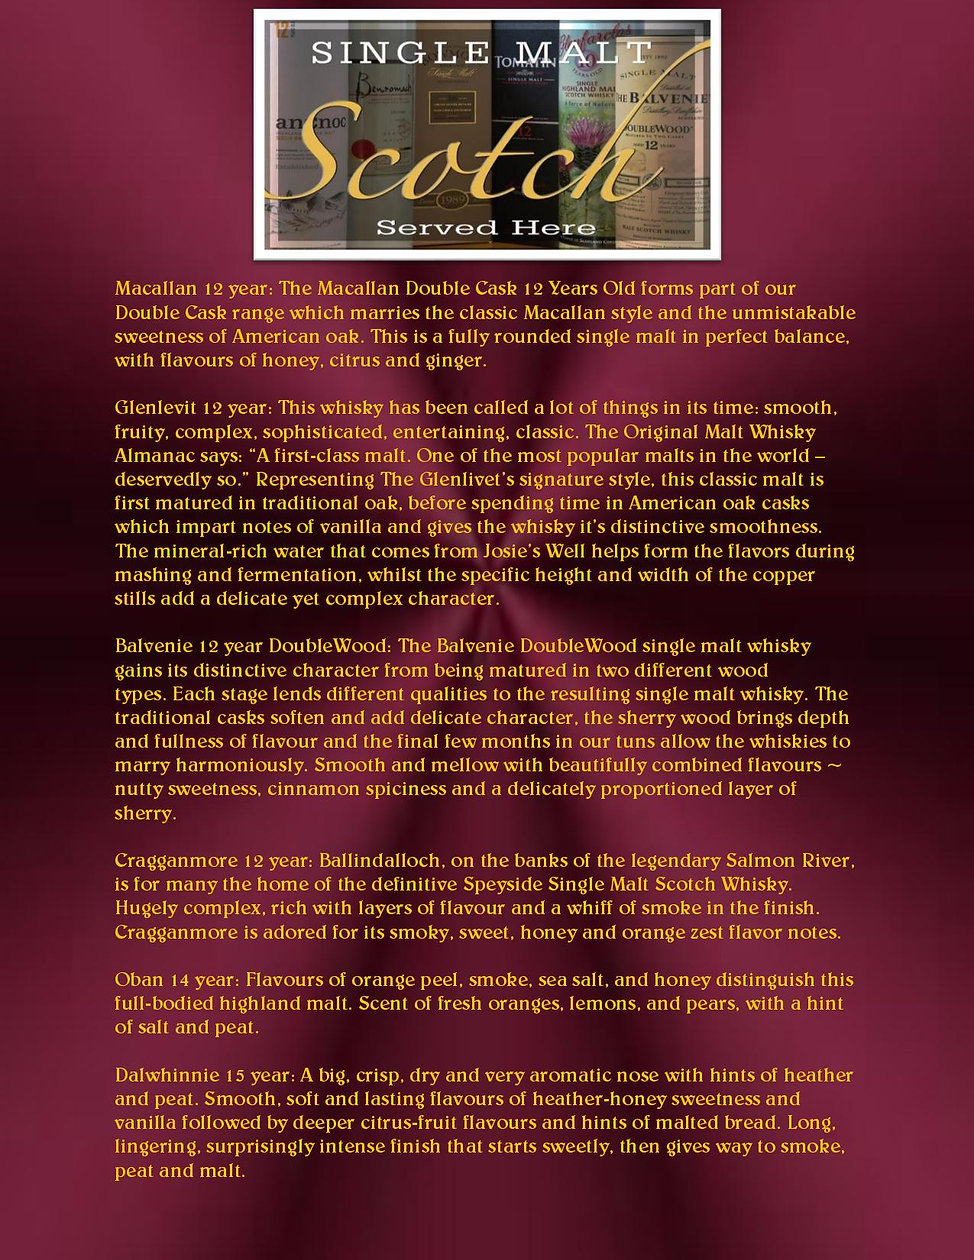 Single Malt Scotch Descriptions-page-001